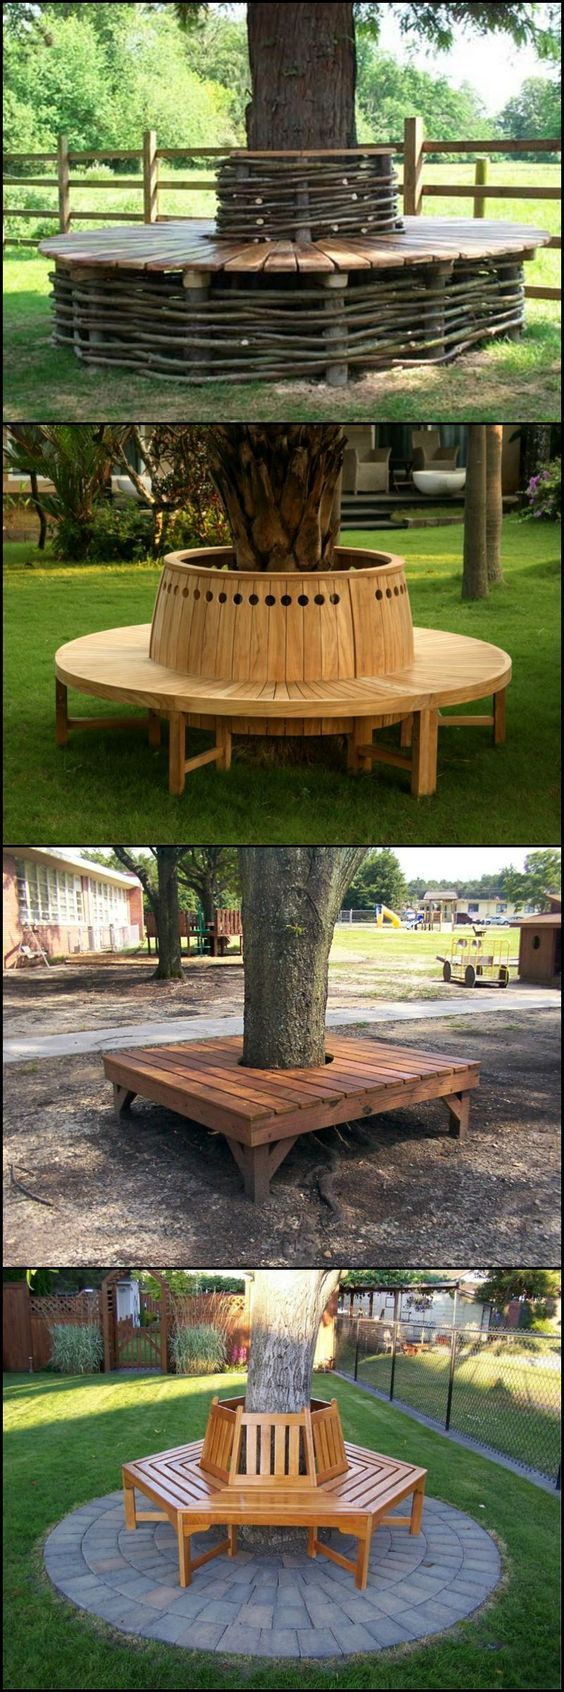 Outdoor wooden benches - Do You Have A Favorite Park Where You Love To Spend A Warm Afternoon Sitting